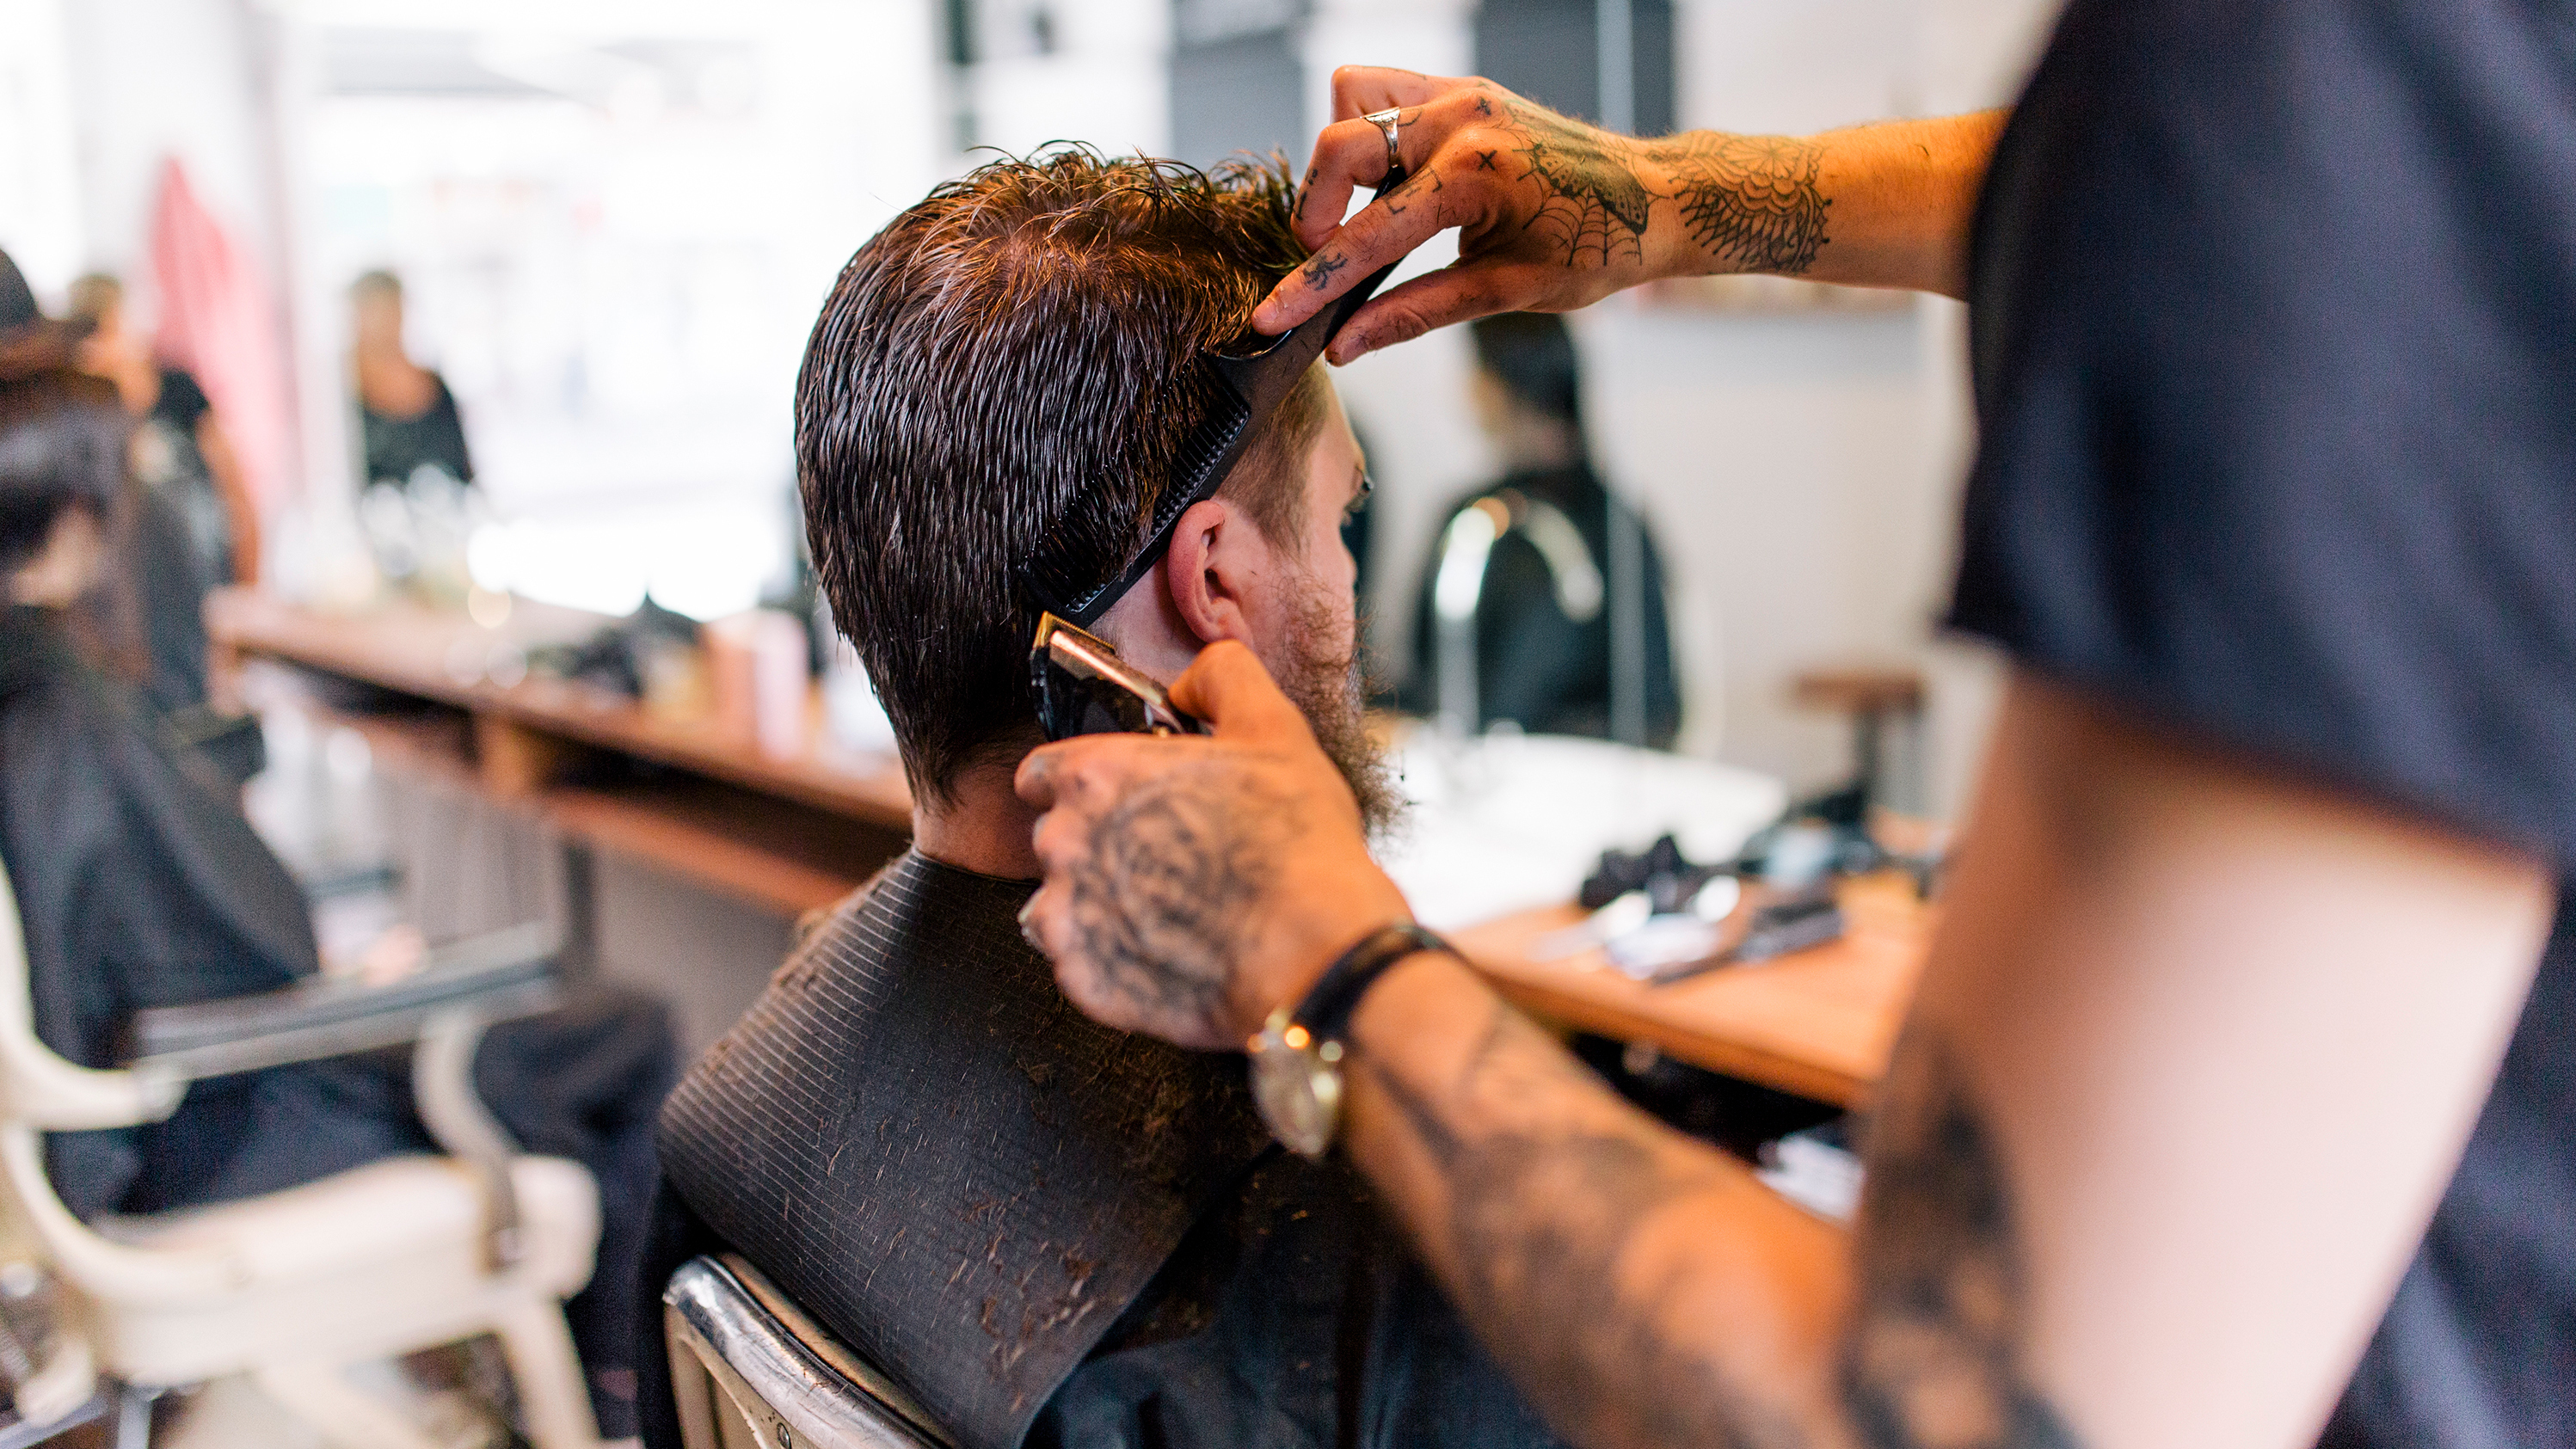 In search of your salon and hairdresser: 3 rules of choice